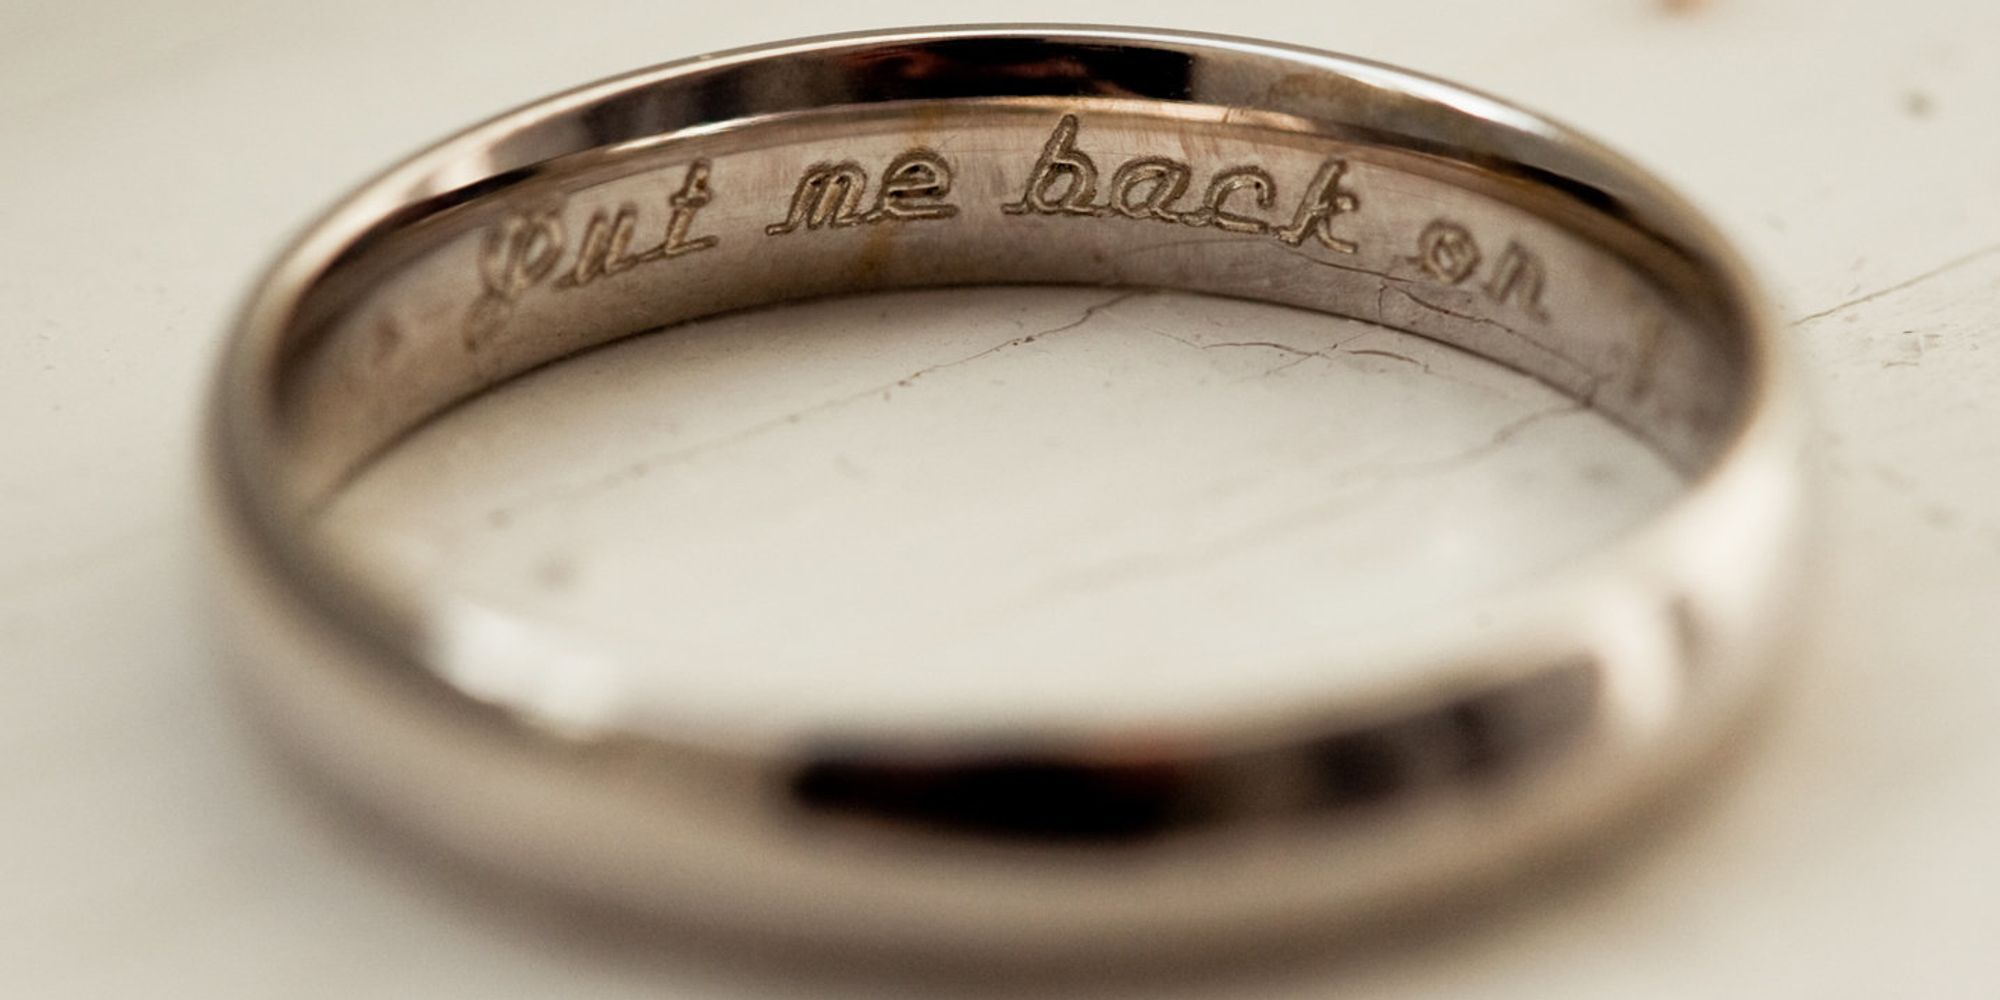 10 Cheeky Wedding Ring Engravings That Speak Volumes